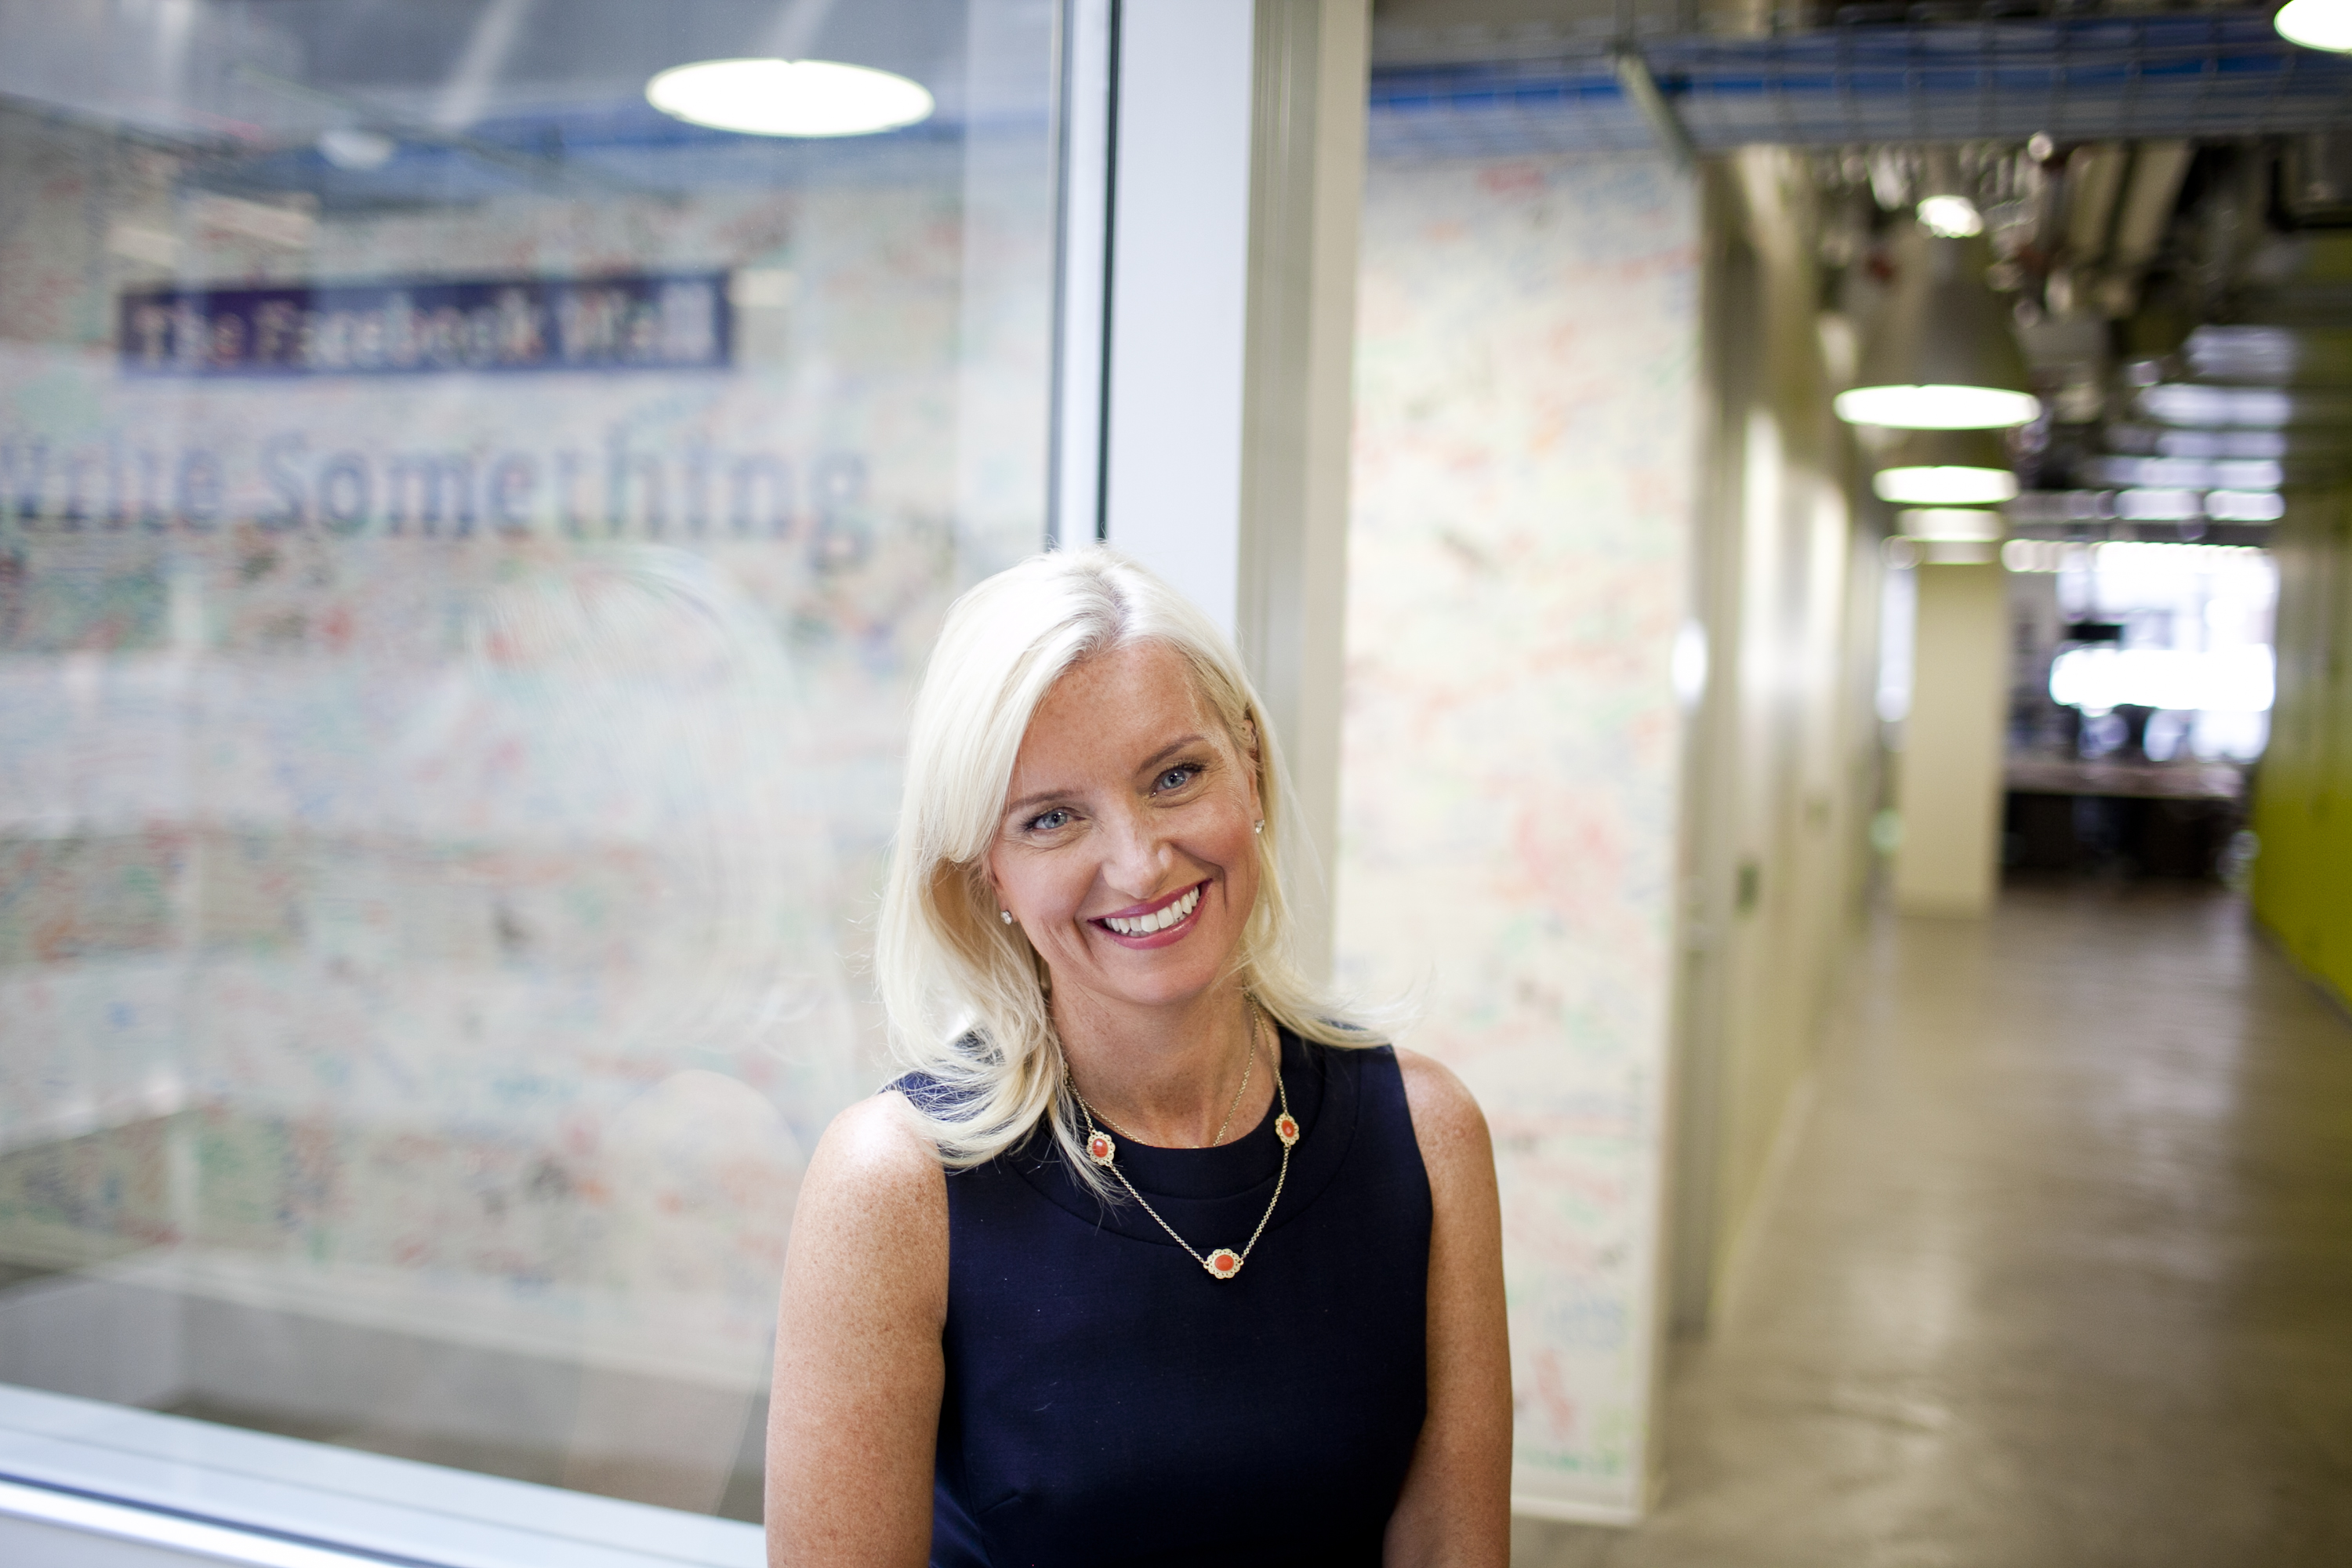 Carolyn Everson at the Facebook office in New York City.